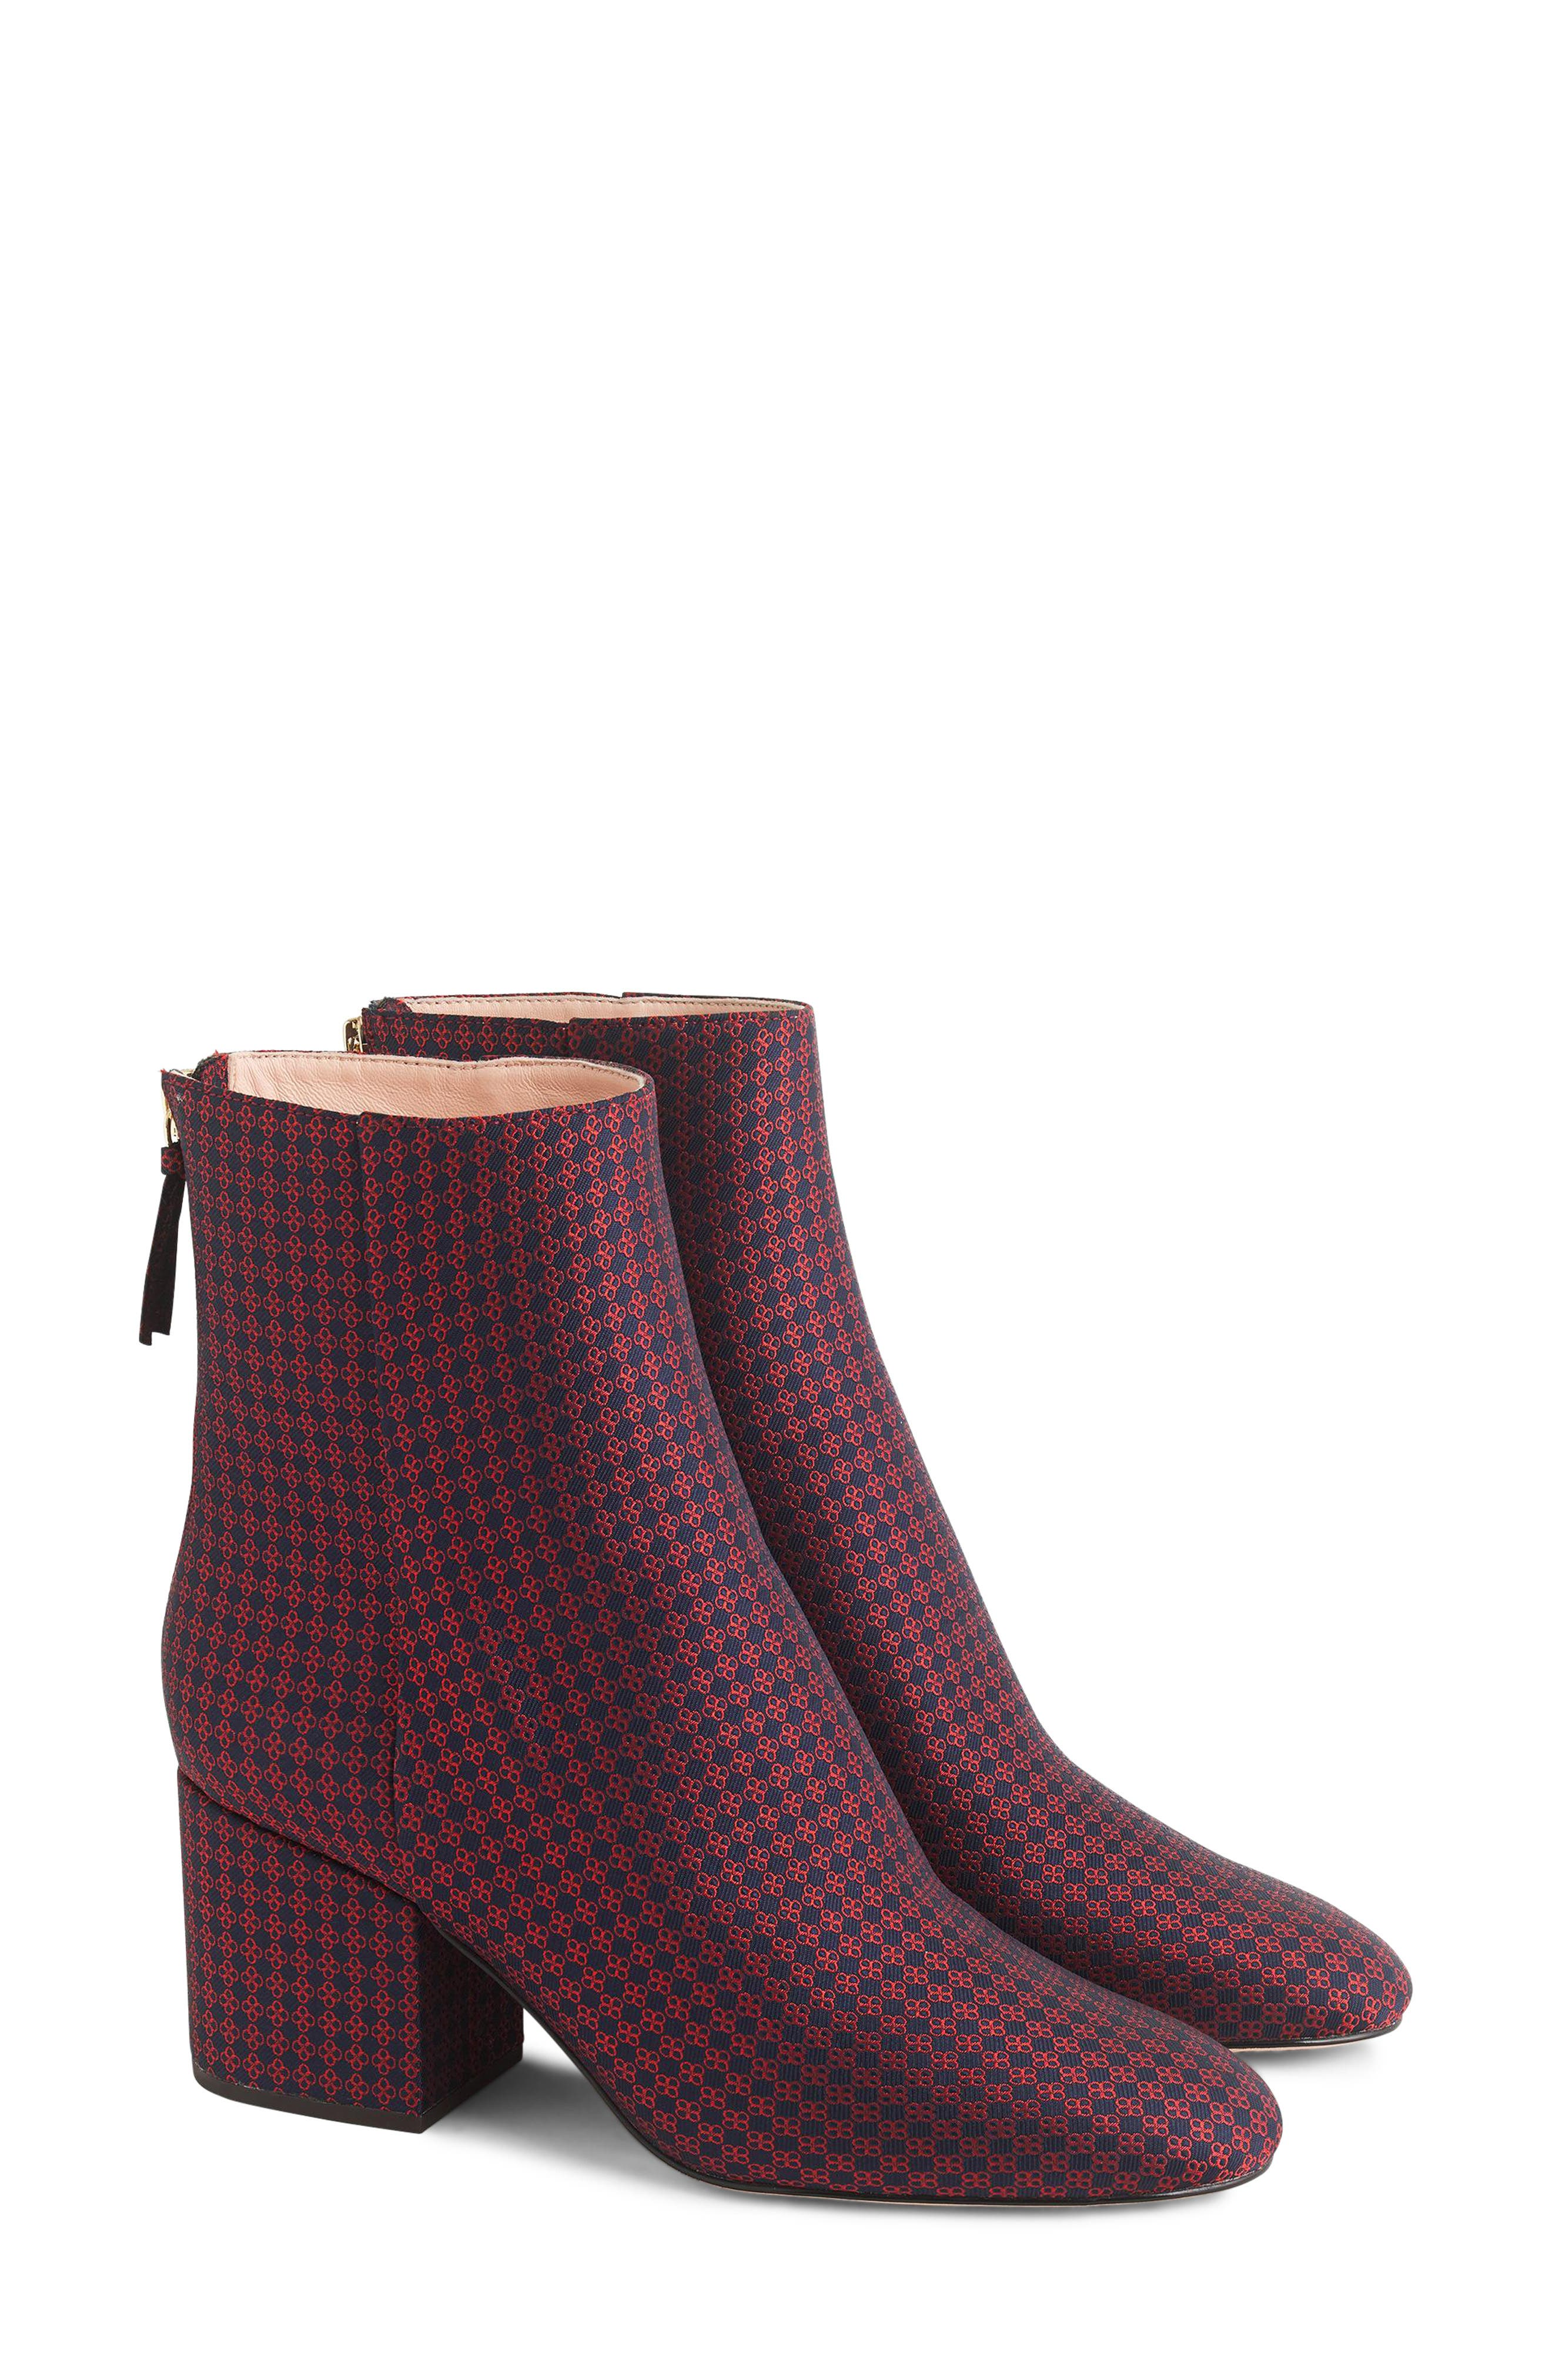 J.CREW, Maya Ankle Bootie, Main thumbnail 1, color, NAVY/ RED PLAID